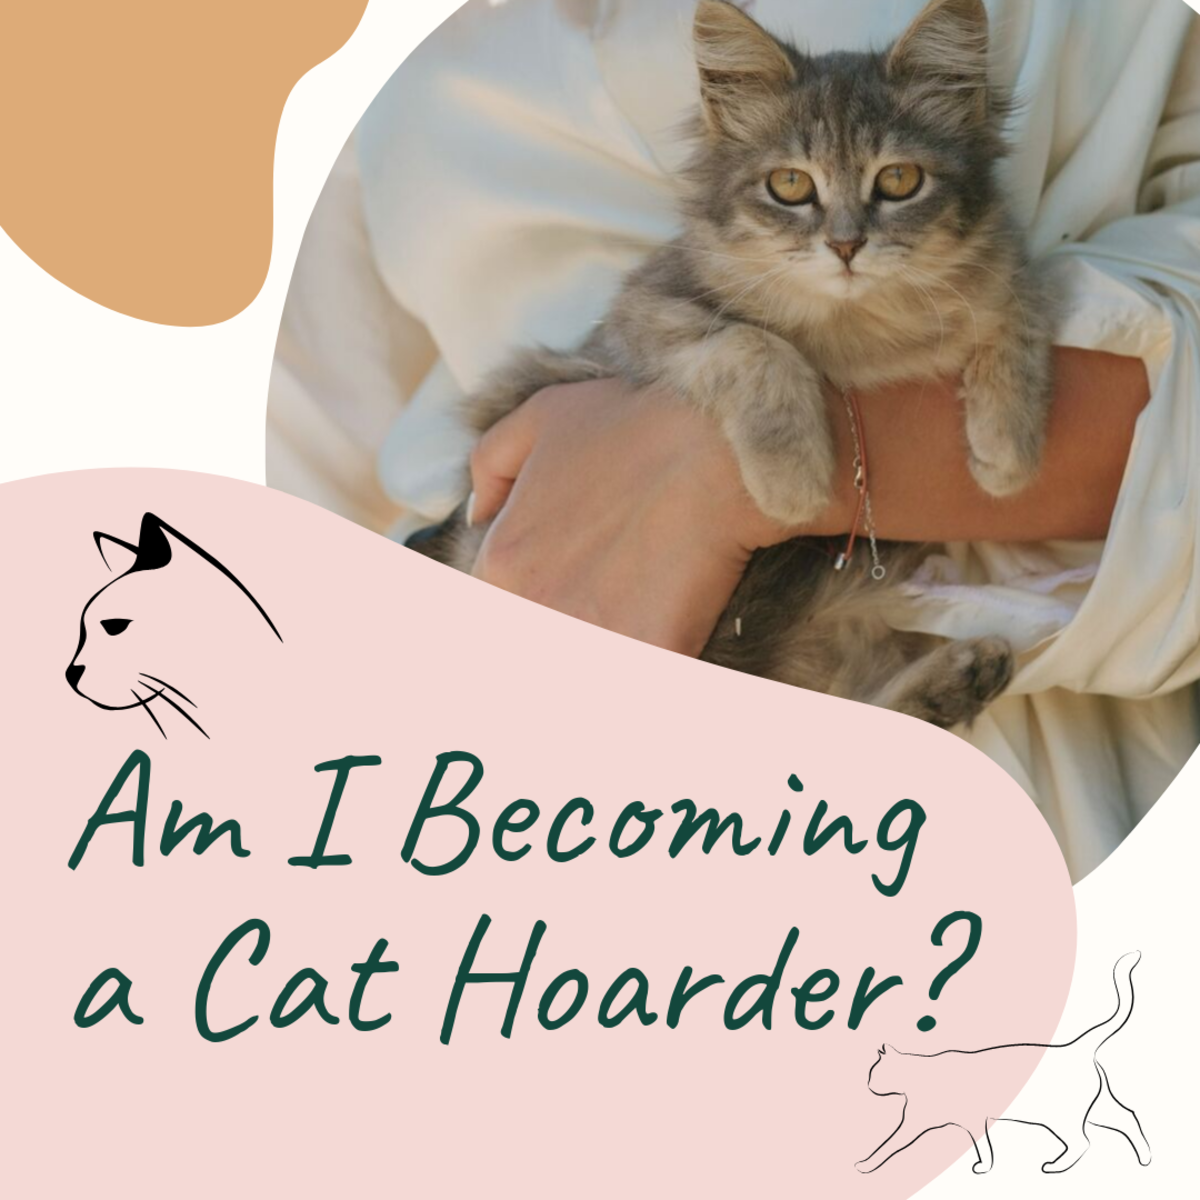 Am I a Cat Hoarder?